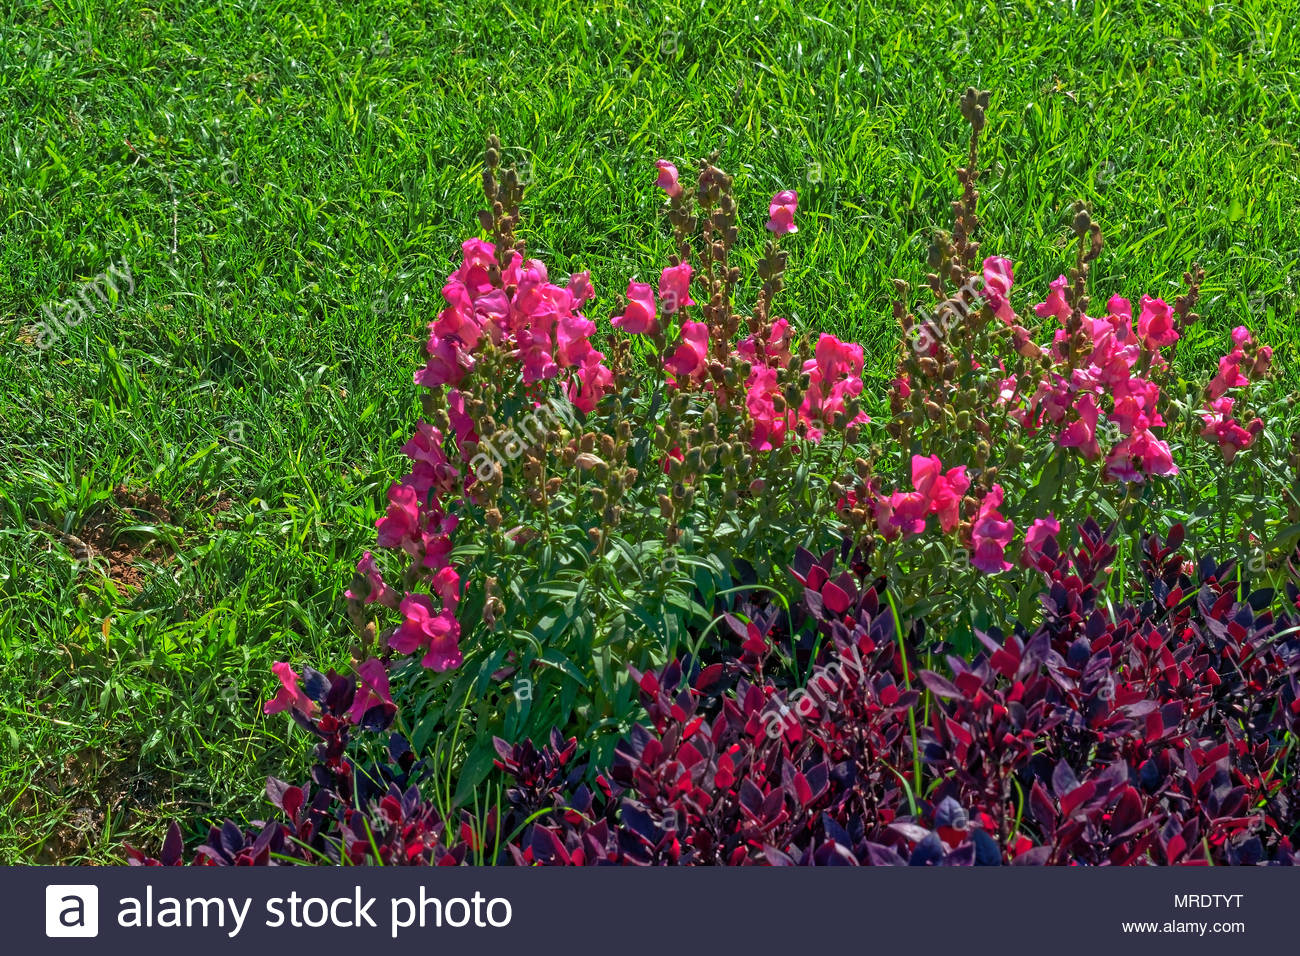 Pink Flowers And Purple Bush Like Plants On A Grass Background Shot